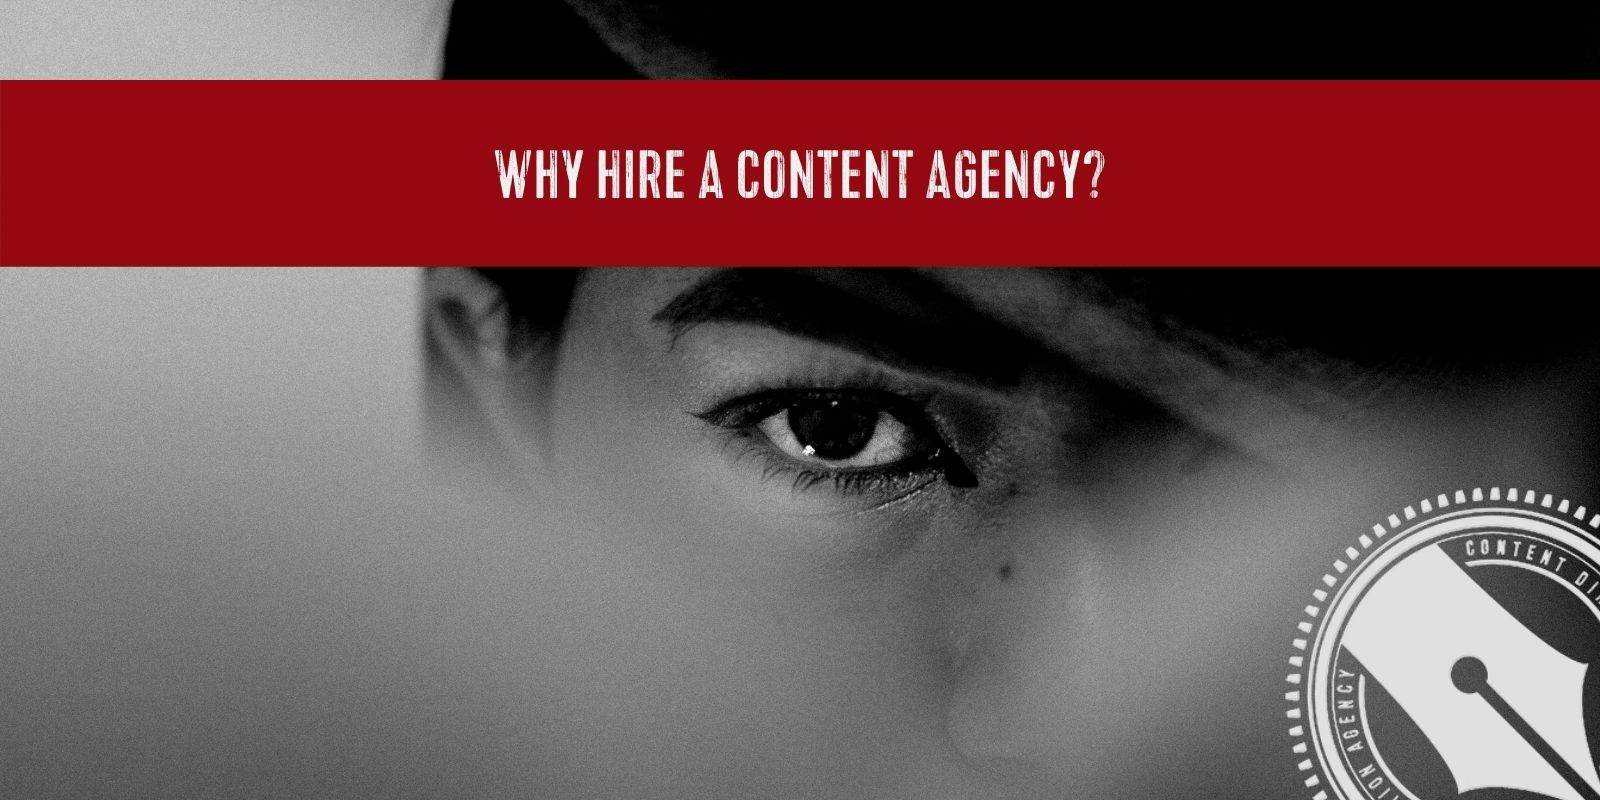 [A mysterious dark eye looks up and over a haze. A nicely groomed eyebrow frames the eye beneath a large detective hat asking the question, why hire a fractional marketing team.]